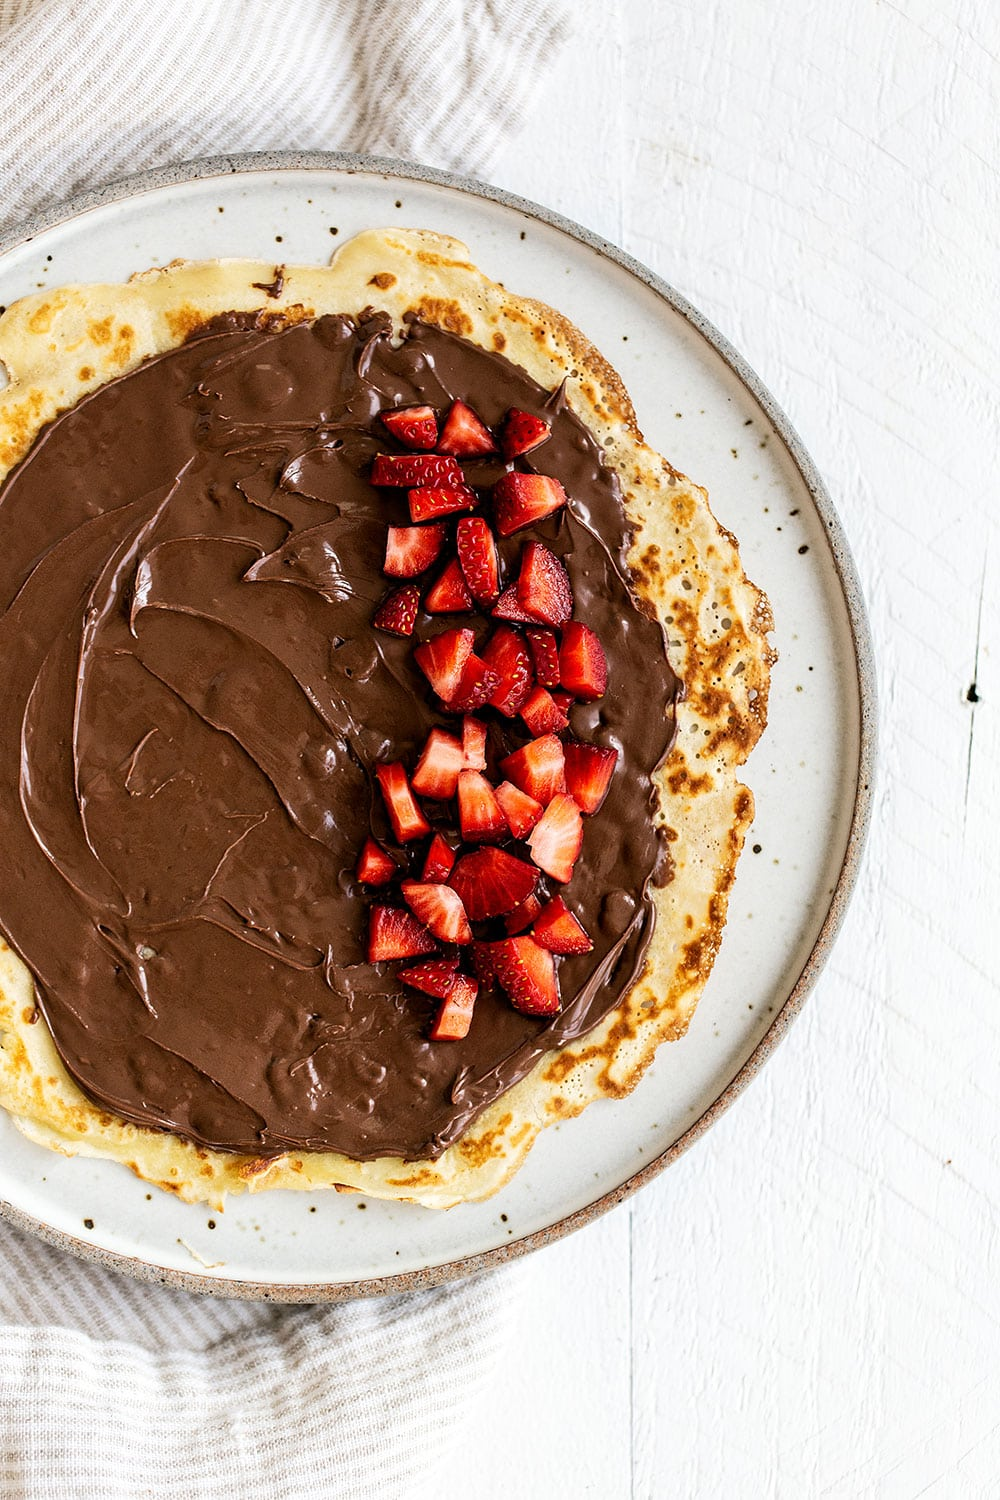 Open crepe on a plate with a generous spread of nutella and chopped strawberries